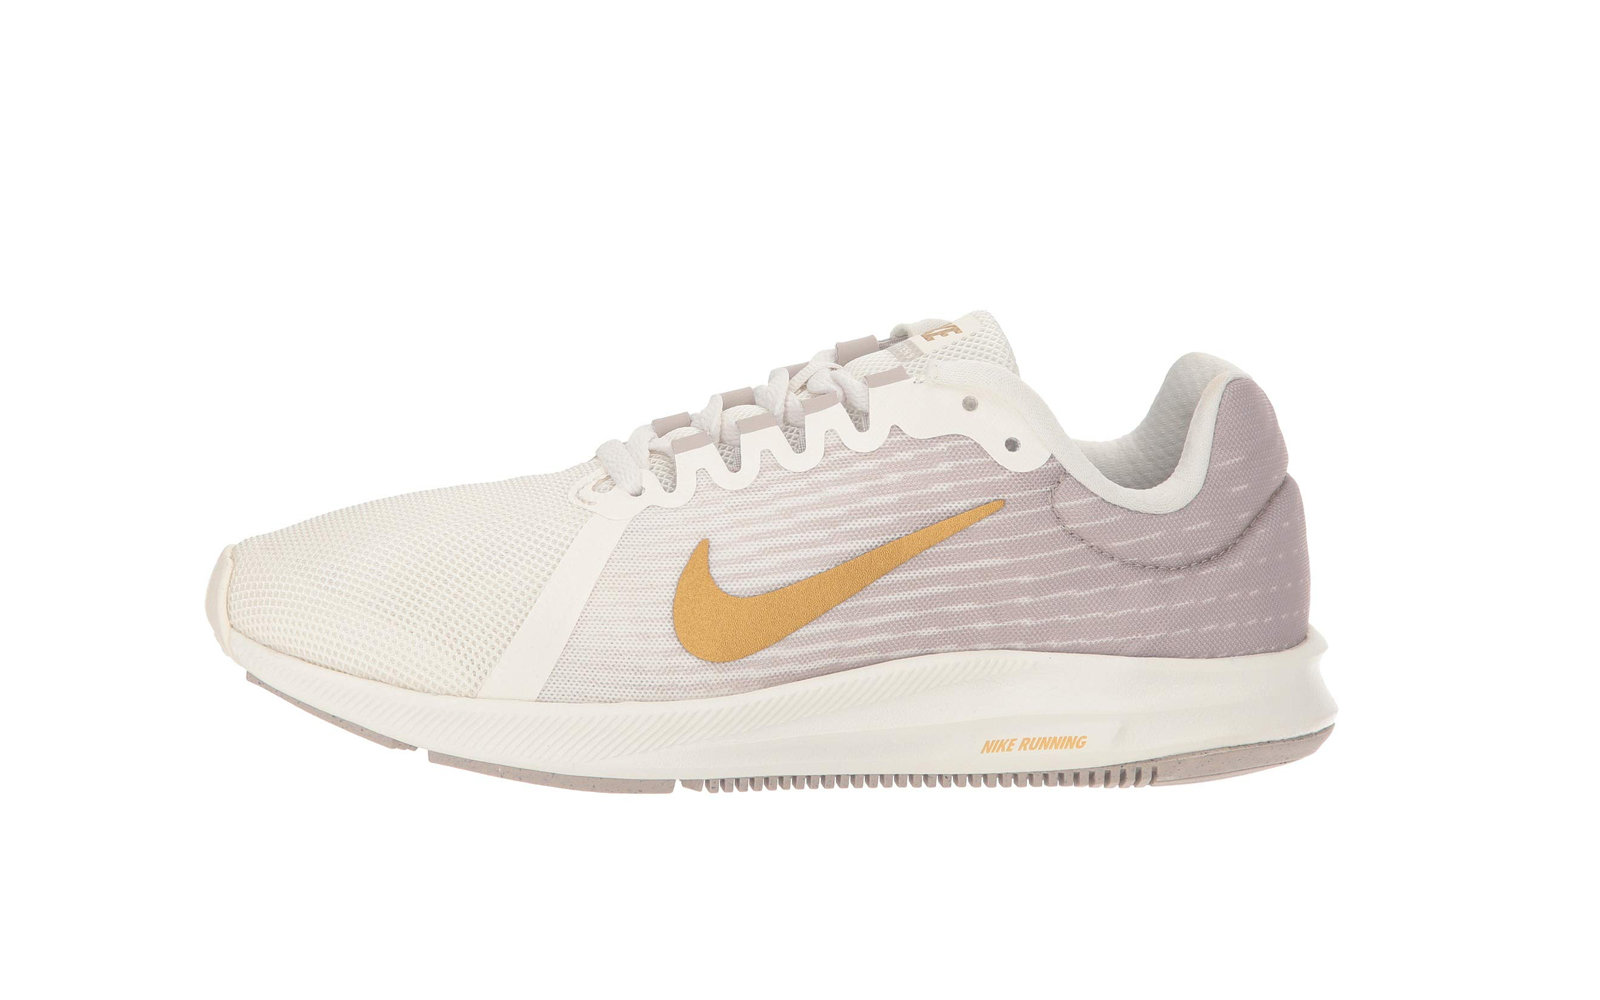 93b6f195e3597 Nike Downshifter 8. Sneakers on Sale. Courtesy of Zappos